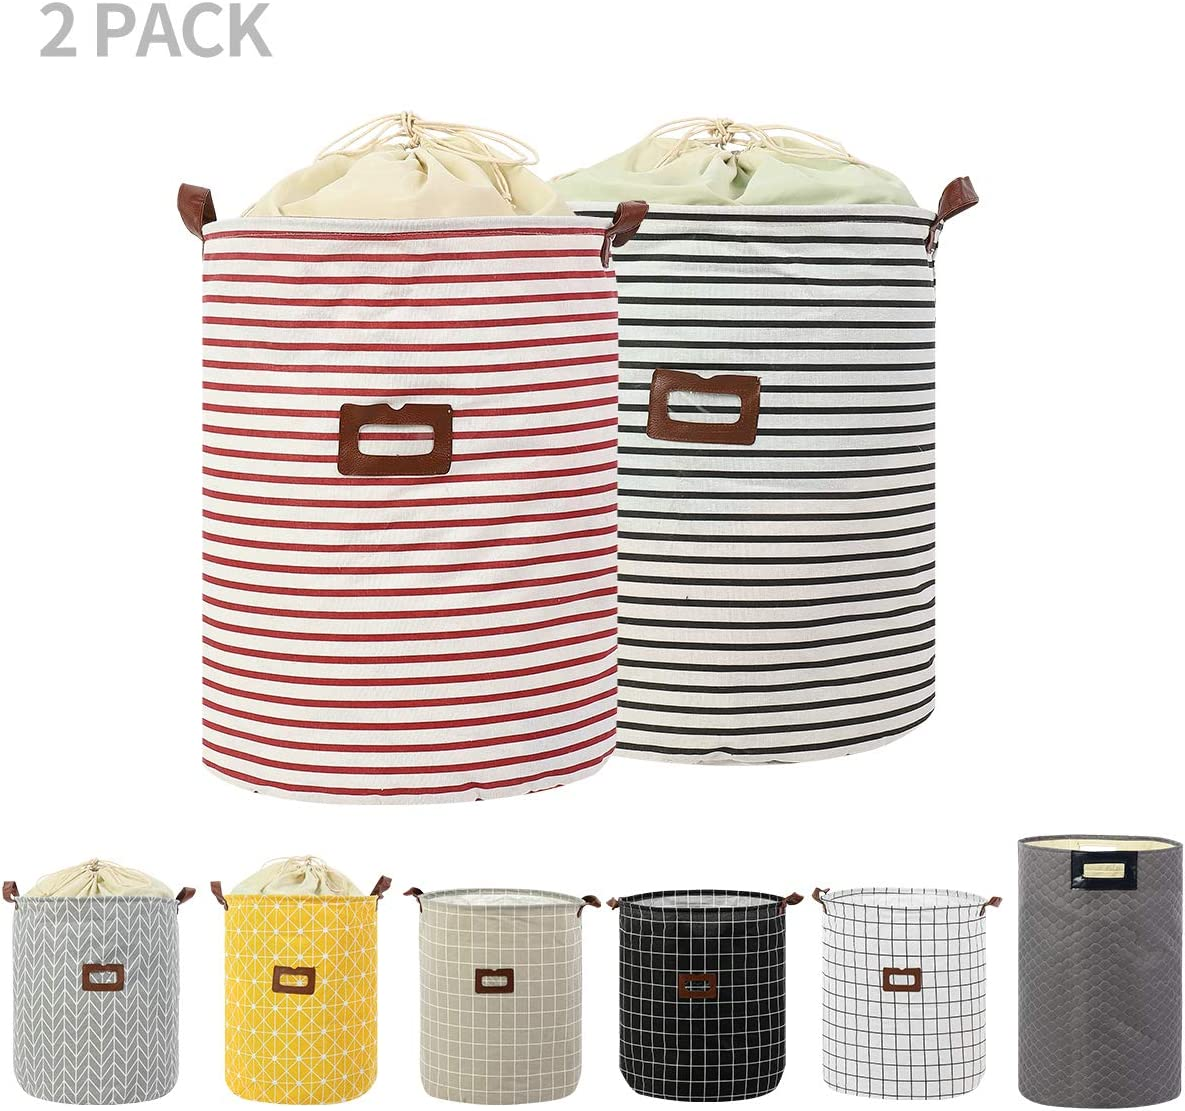 2-Pack Clothes Laundry Hamper Storage Bin Large Collapsible Storage Basket Kids Canvas Laundry Basket for Home Bedroom Nursery Room (PATTERN-05)